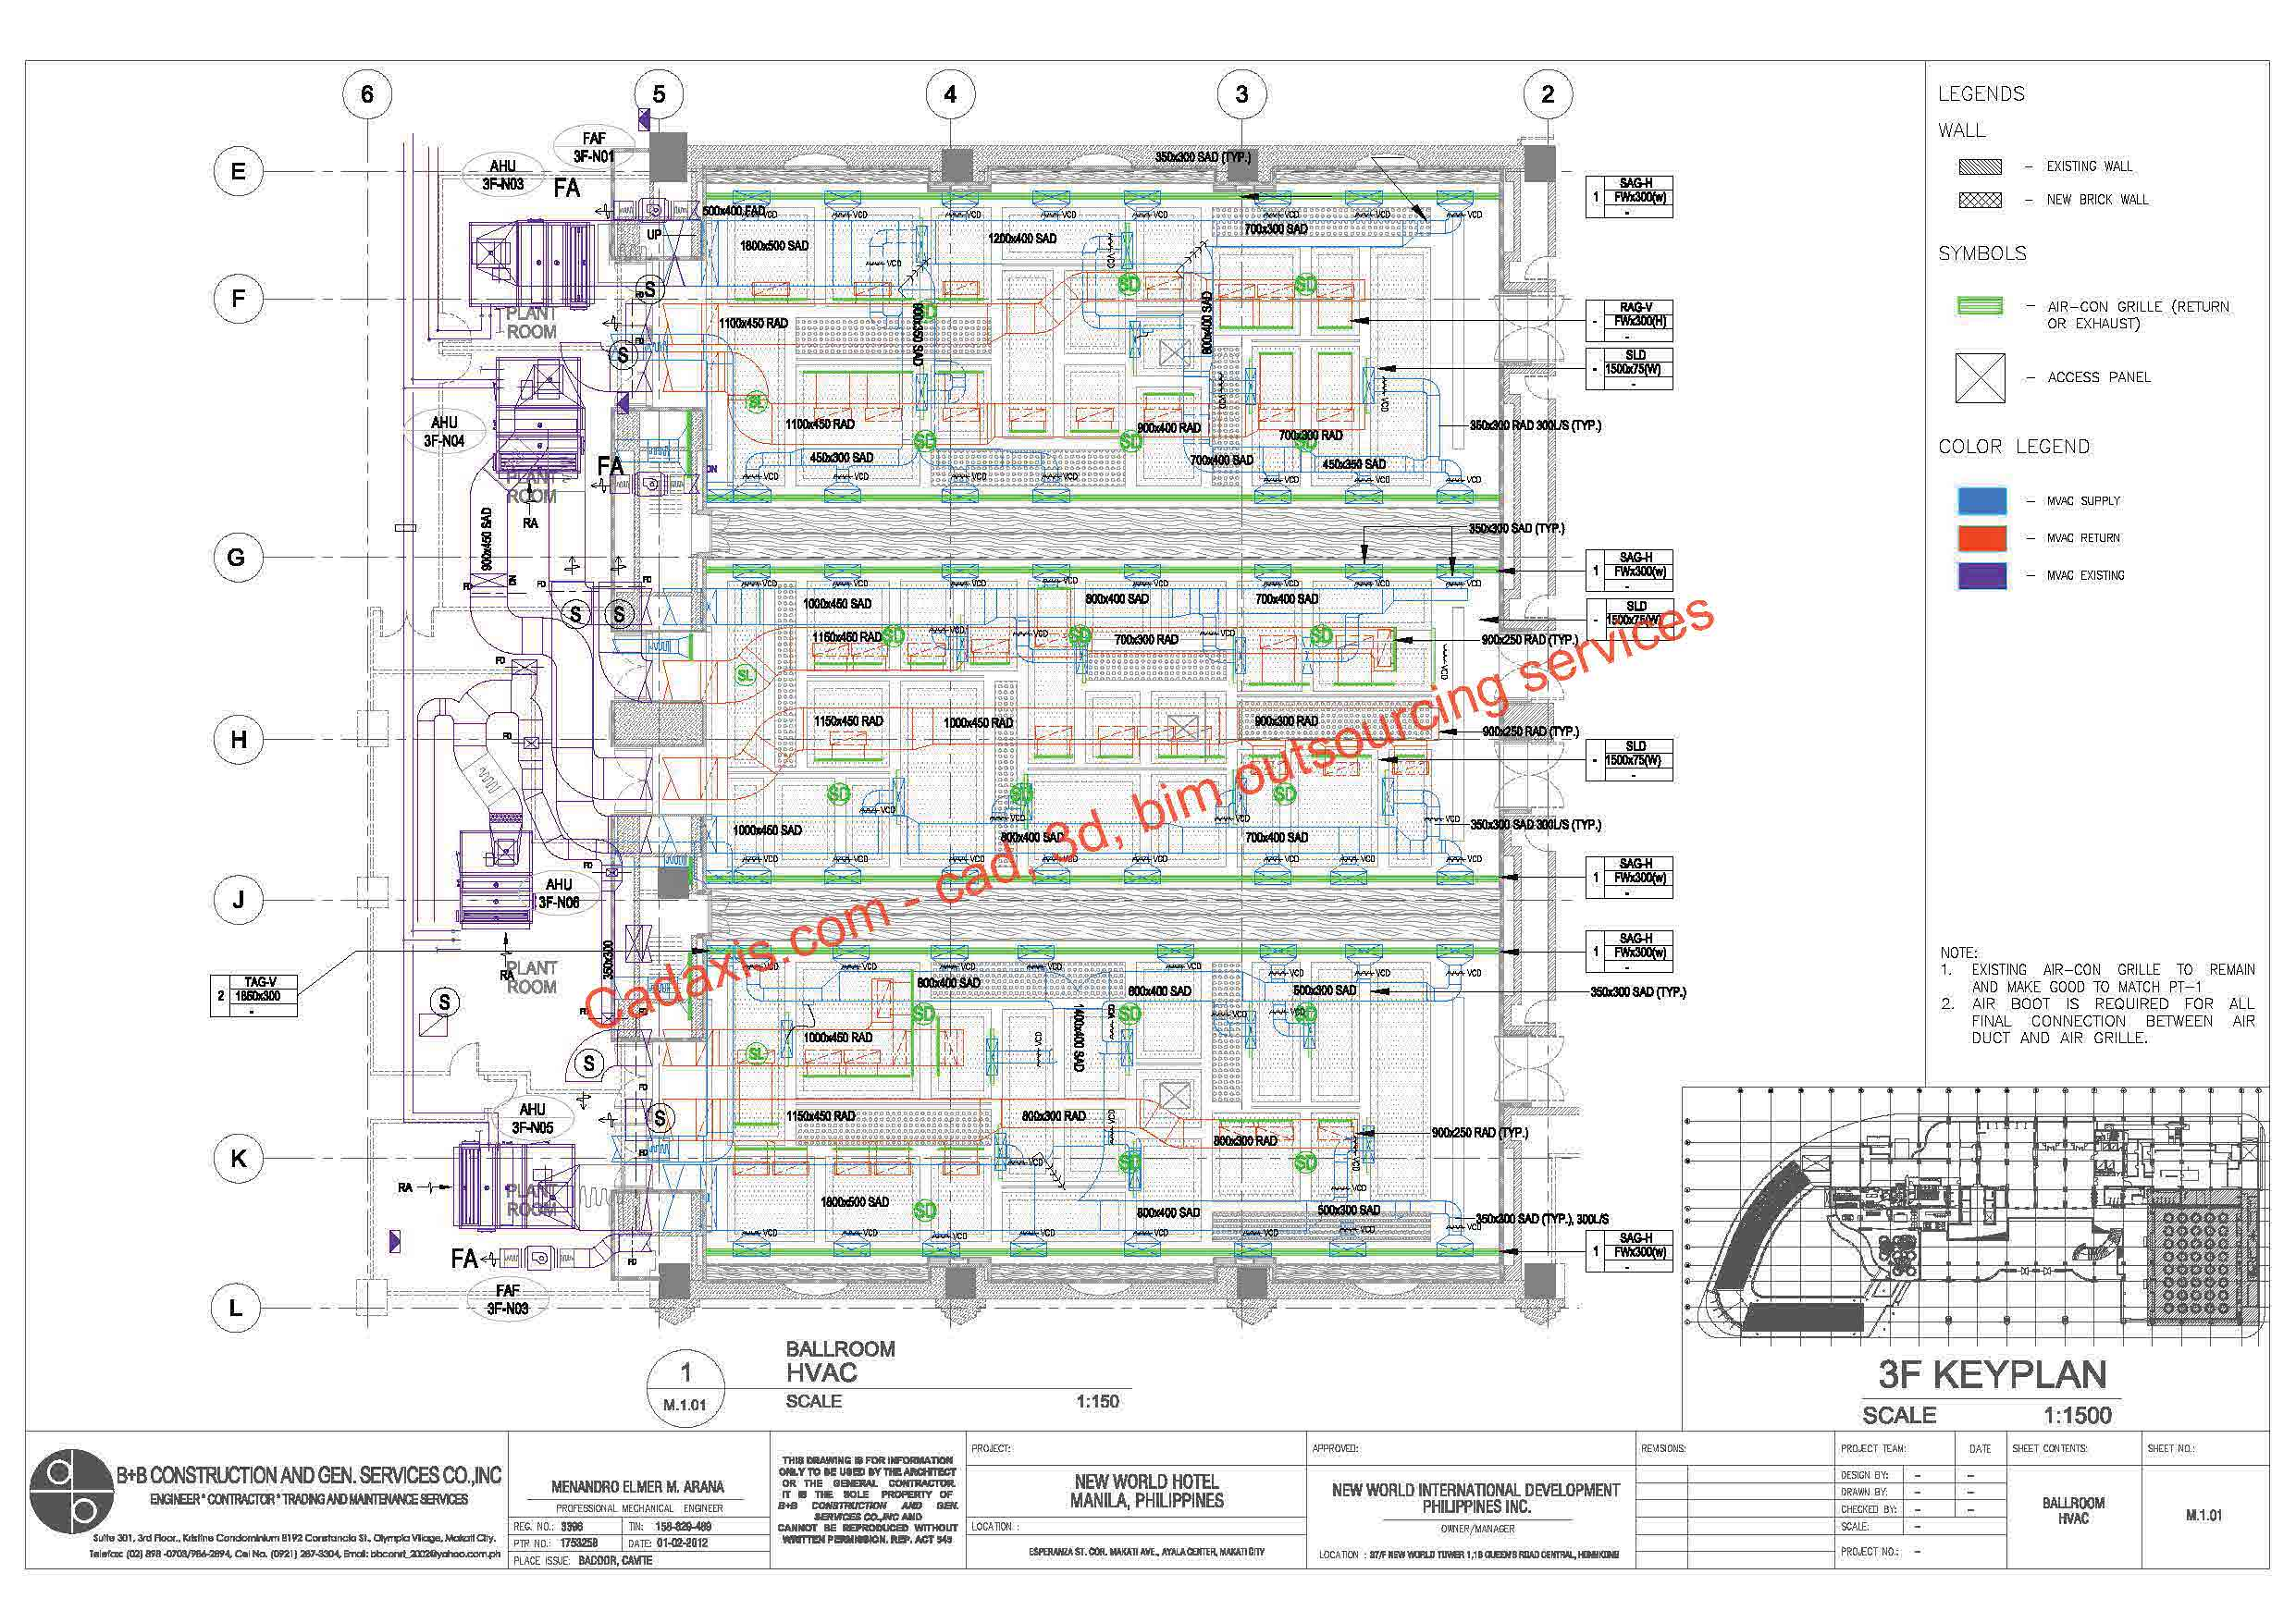 Cad 3d Bim Drafting Outsourcing Services Combined Hvac Drawings Pictures Creating